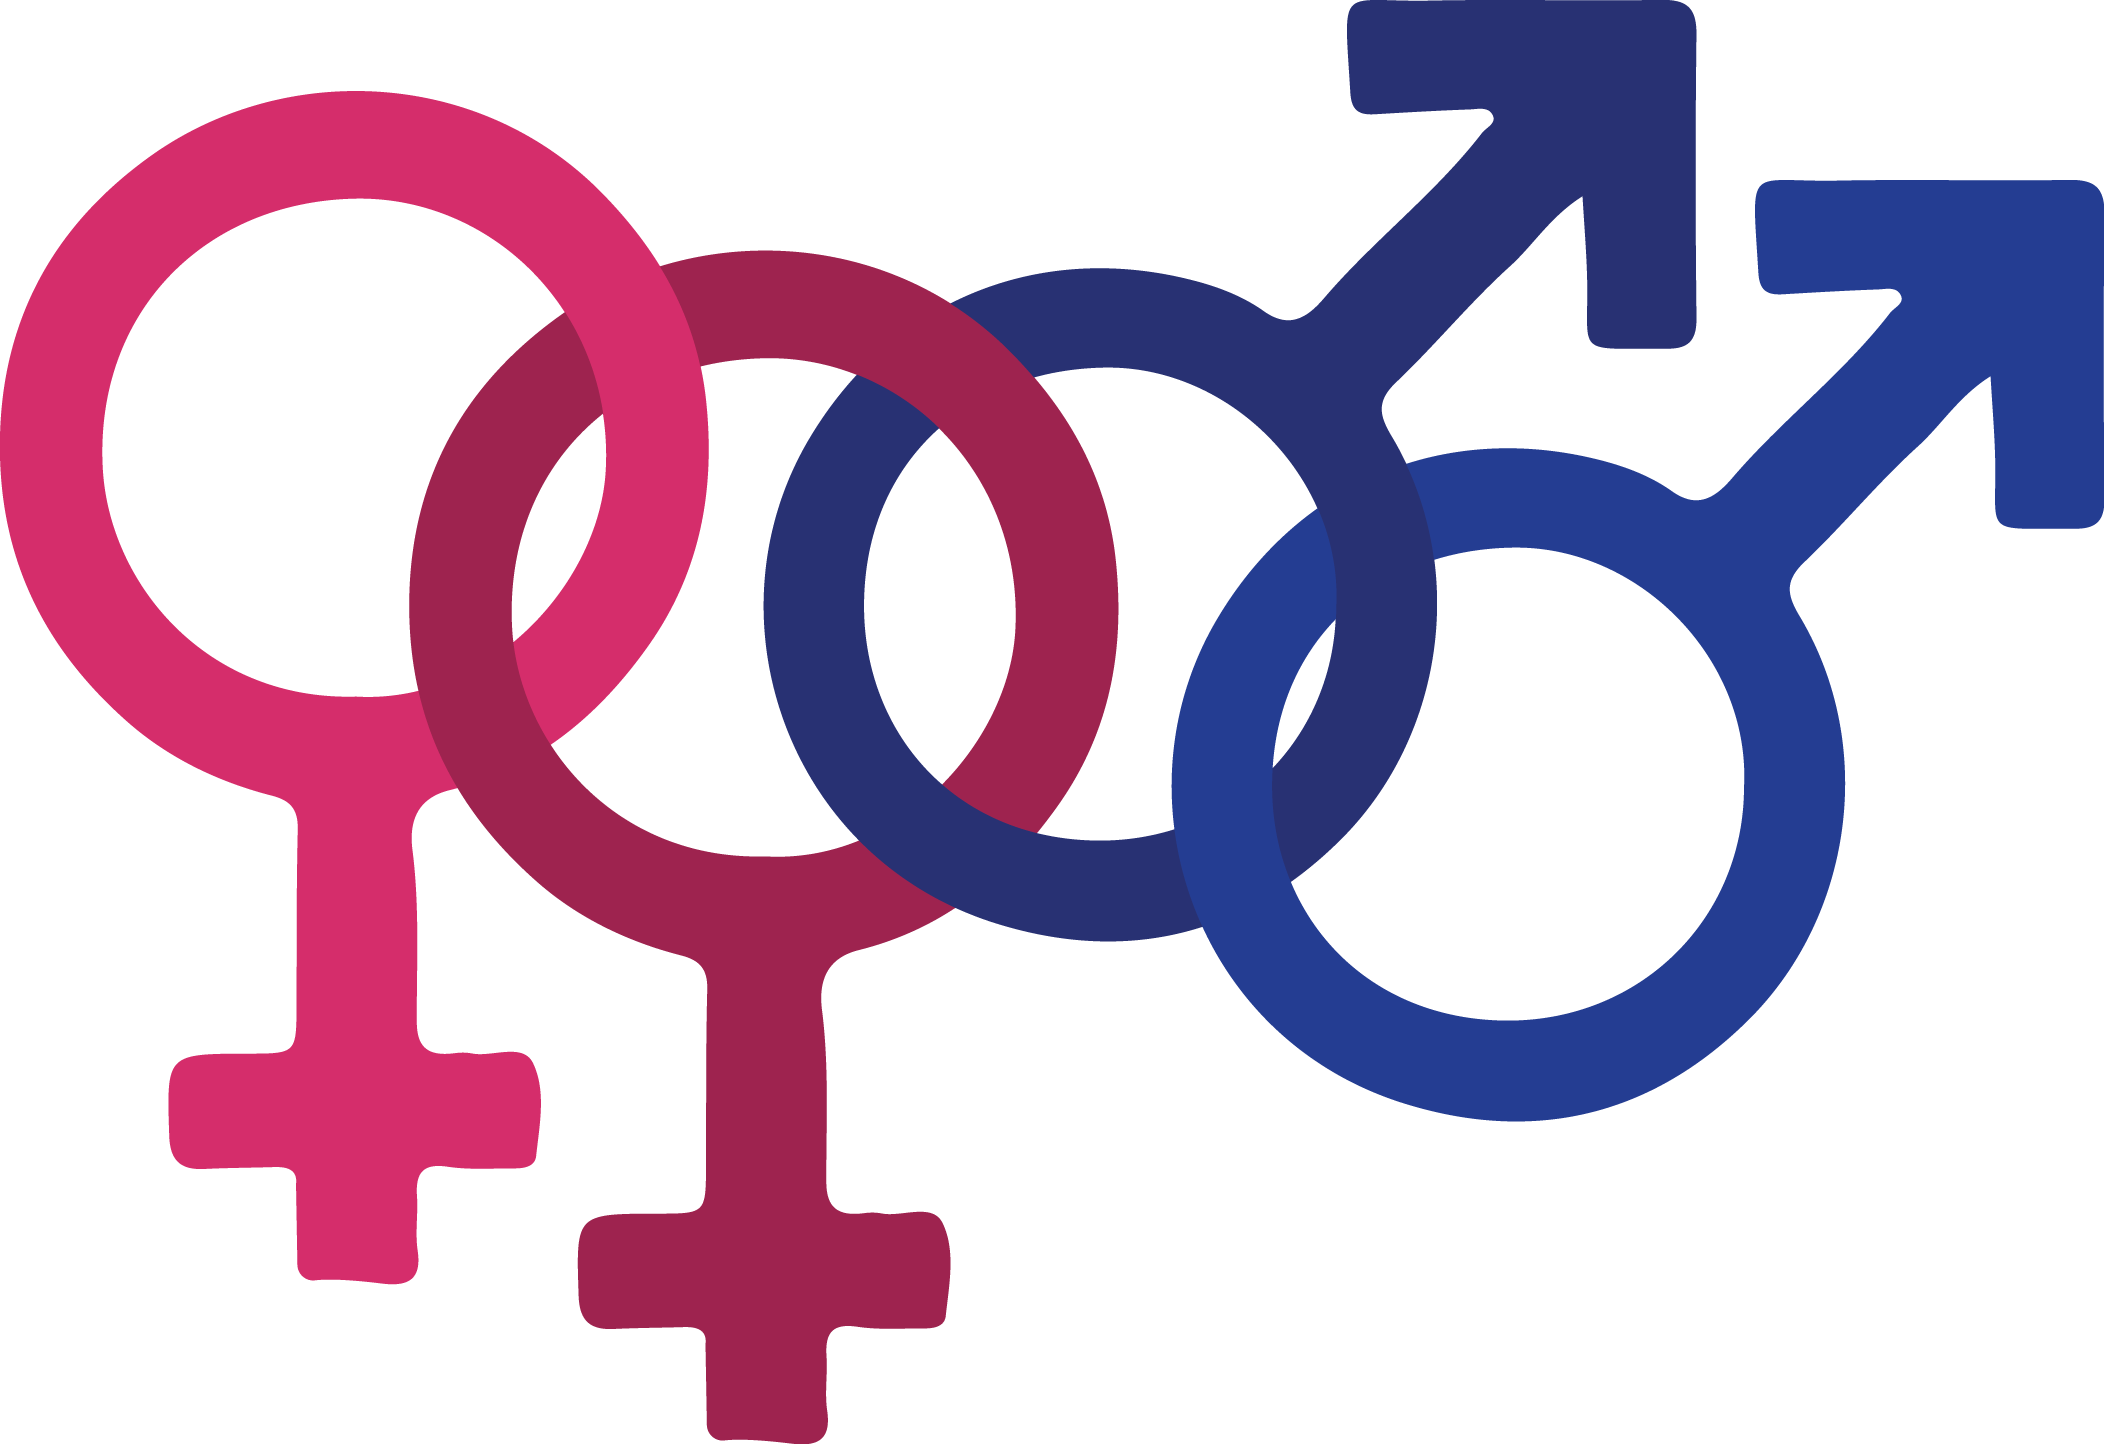 Pink and blue interlocking gender symbols